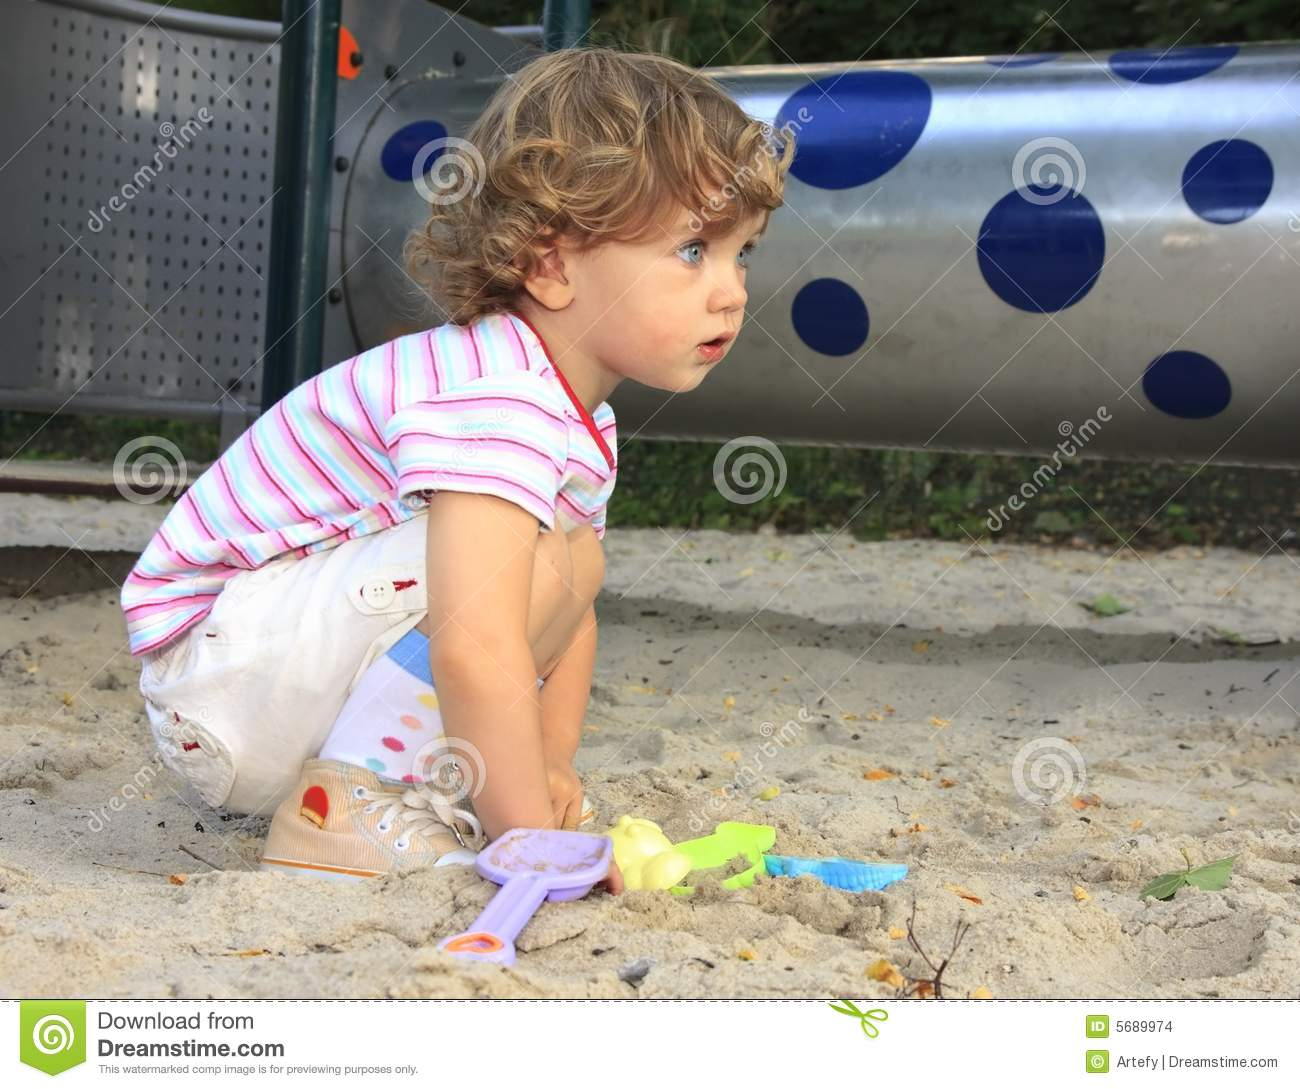 Child In The Sandbox Stock Photo. Image Of Playing, Beach